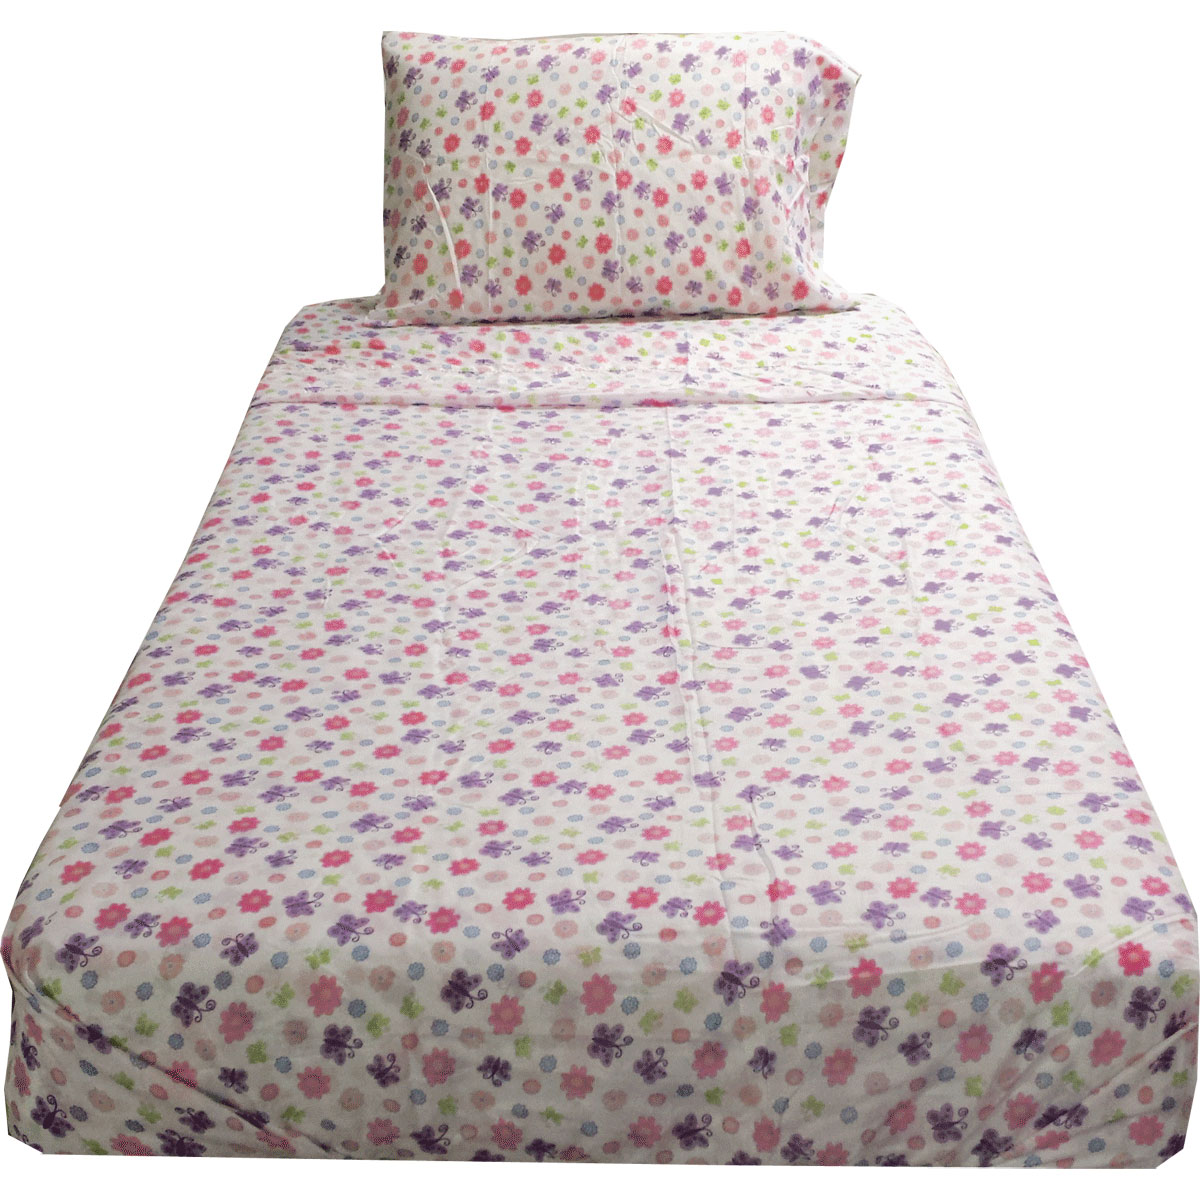 Flowers Butterflies Twin Sheet Set